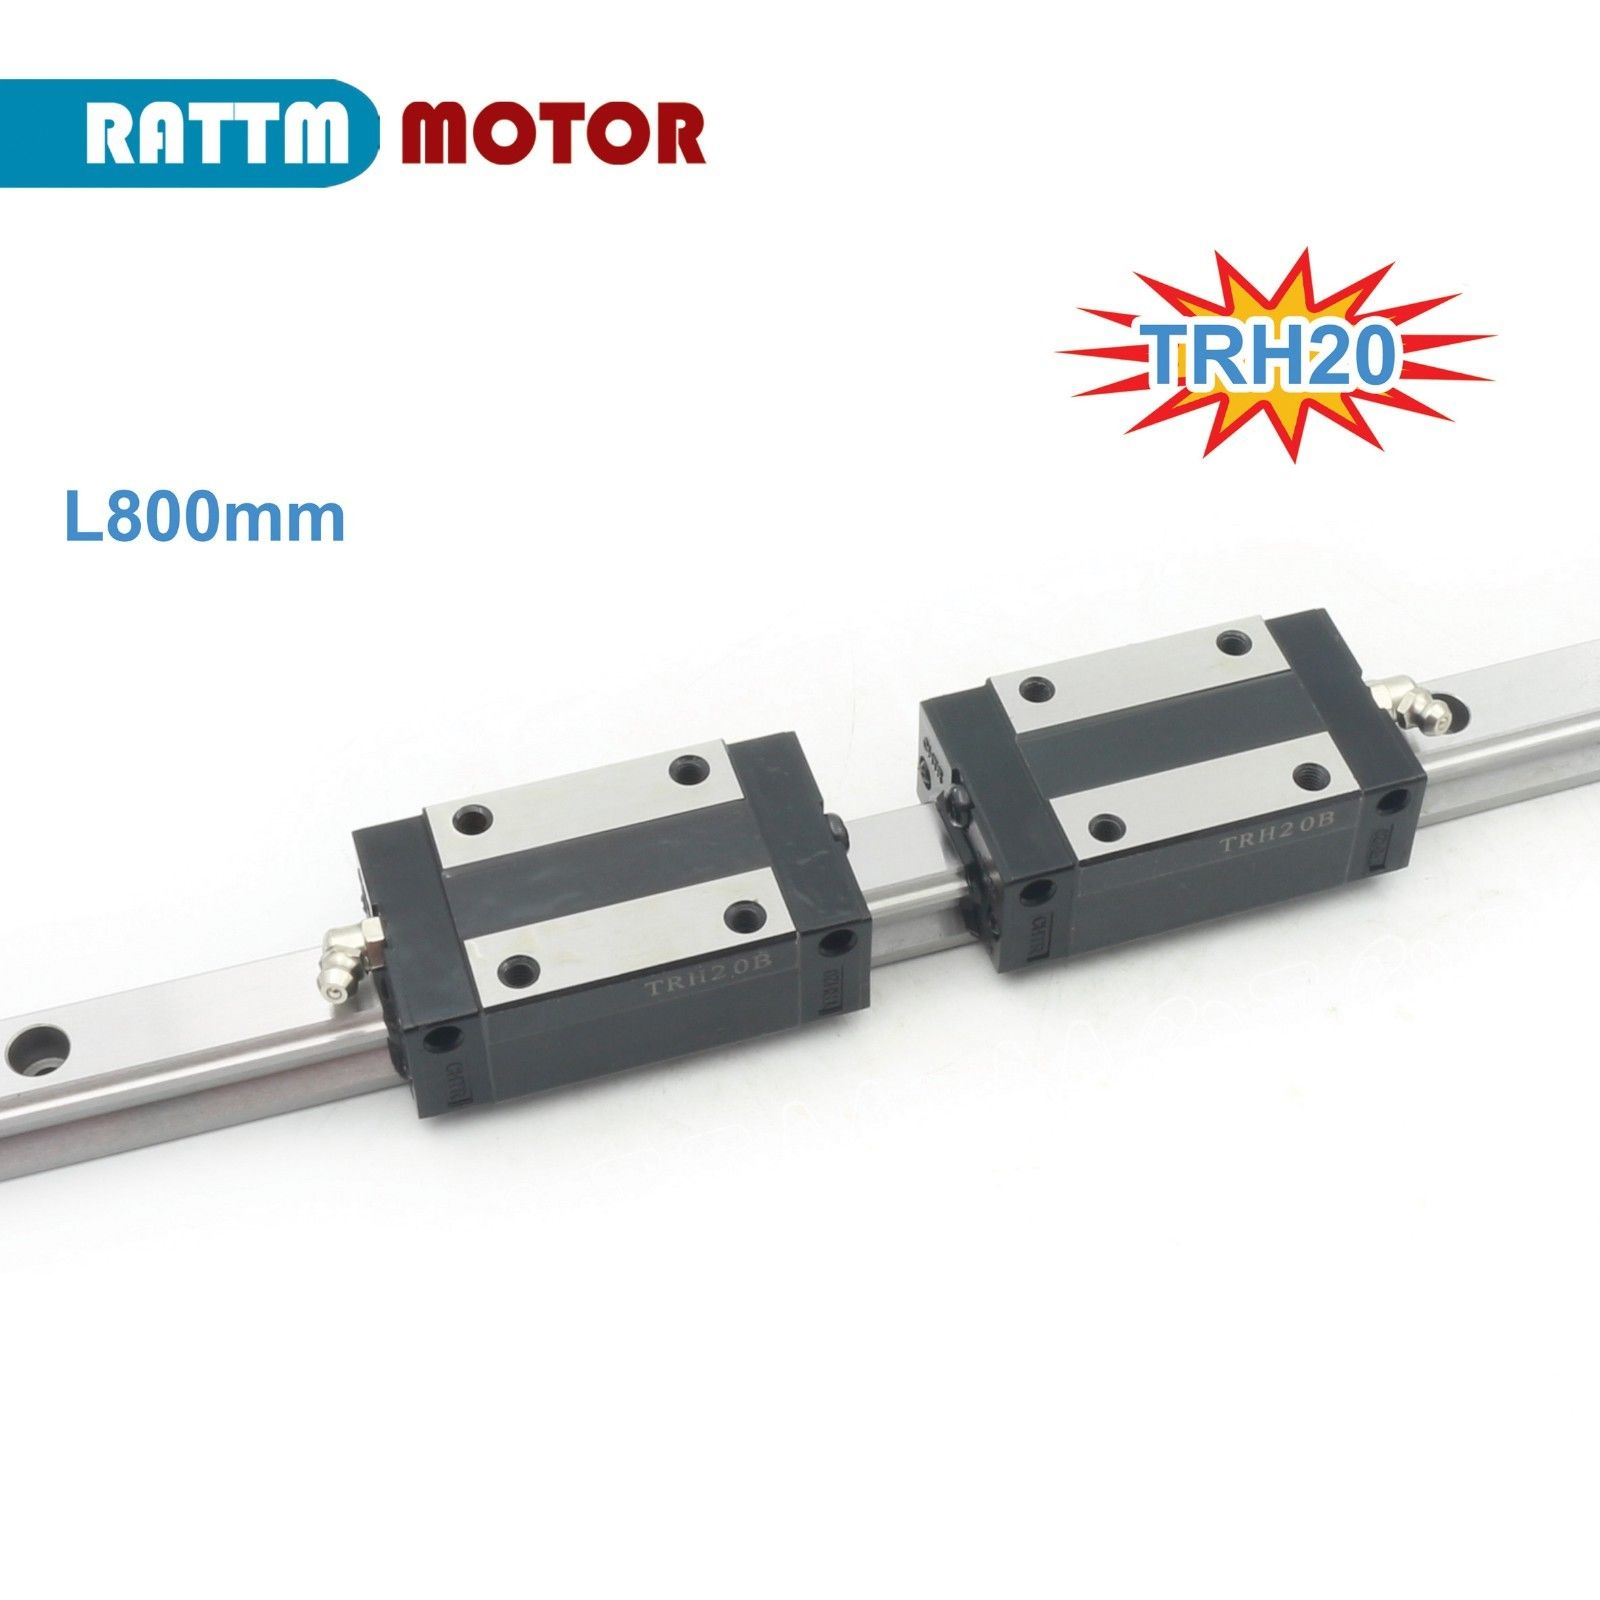 20mm Square Linear guide Rail 800mm+TRH20B Slider Block Carriages for CNC Router